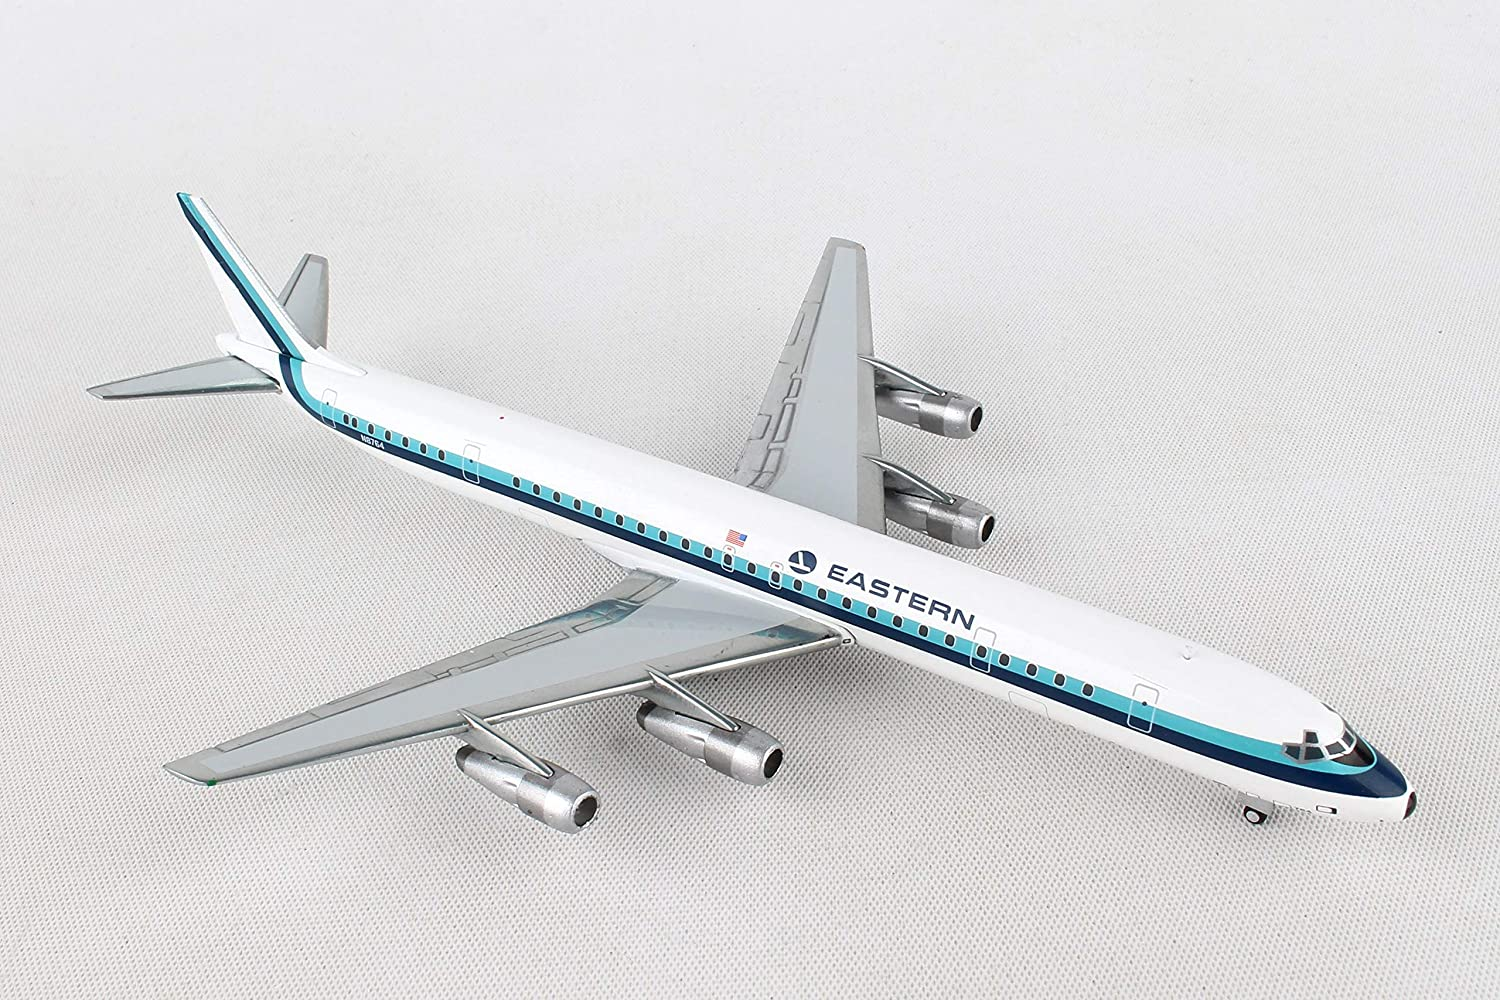 Gemini Jets Eastern Airlines 1 400 Scale Diecast Model Airplane, White